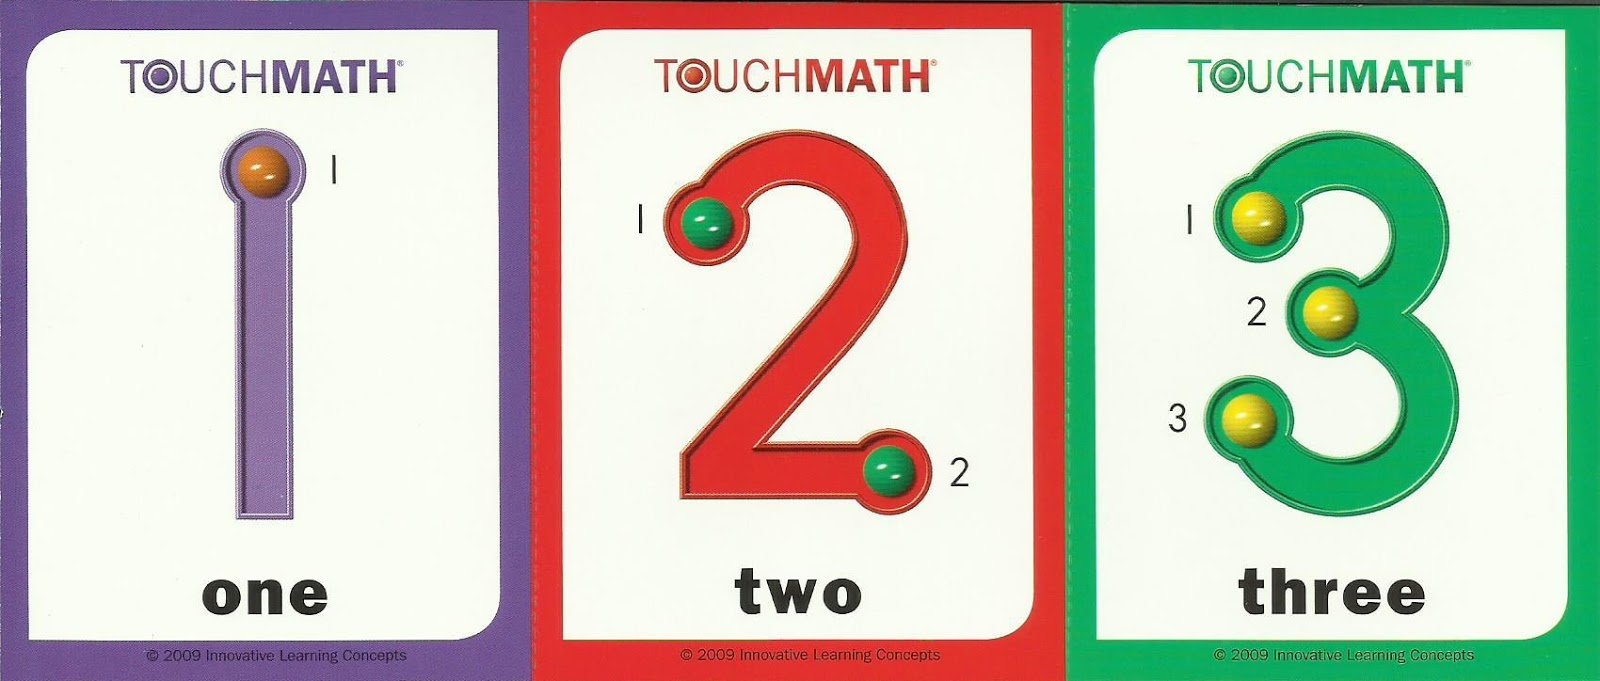 Every Bed of Roses A Touch Math Adventure TouchMath Review – Touch Math Worksheets Free Printables